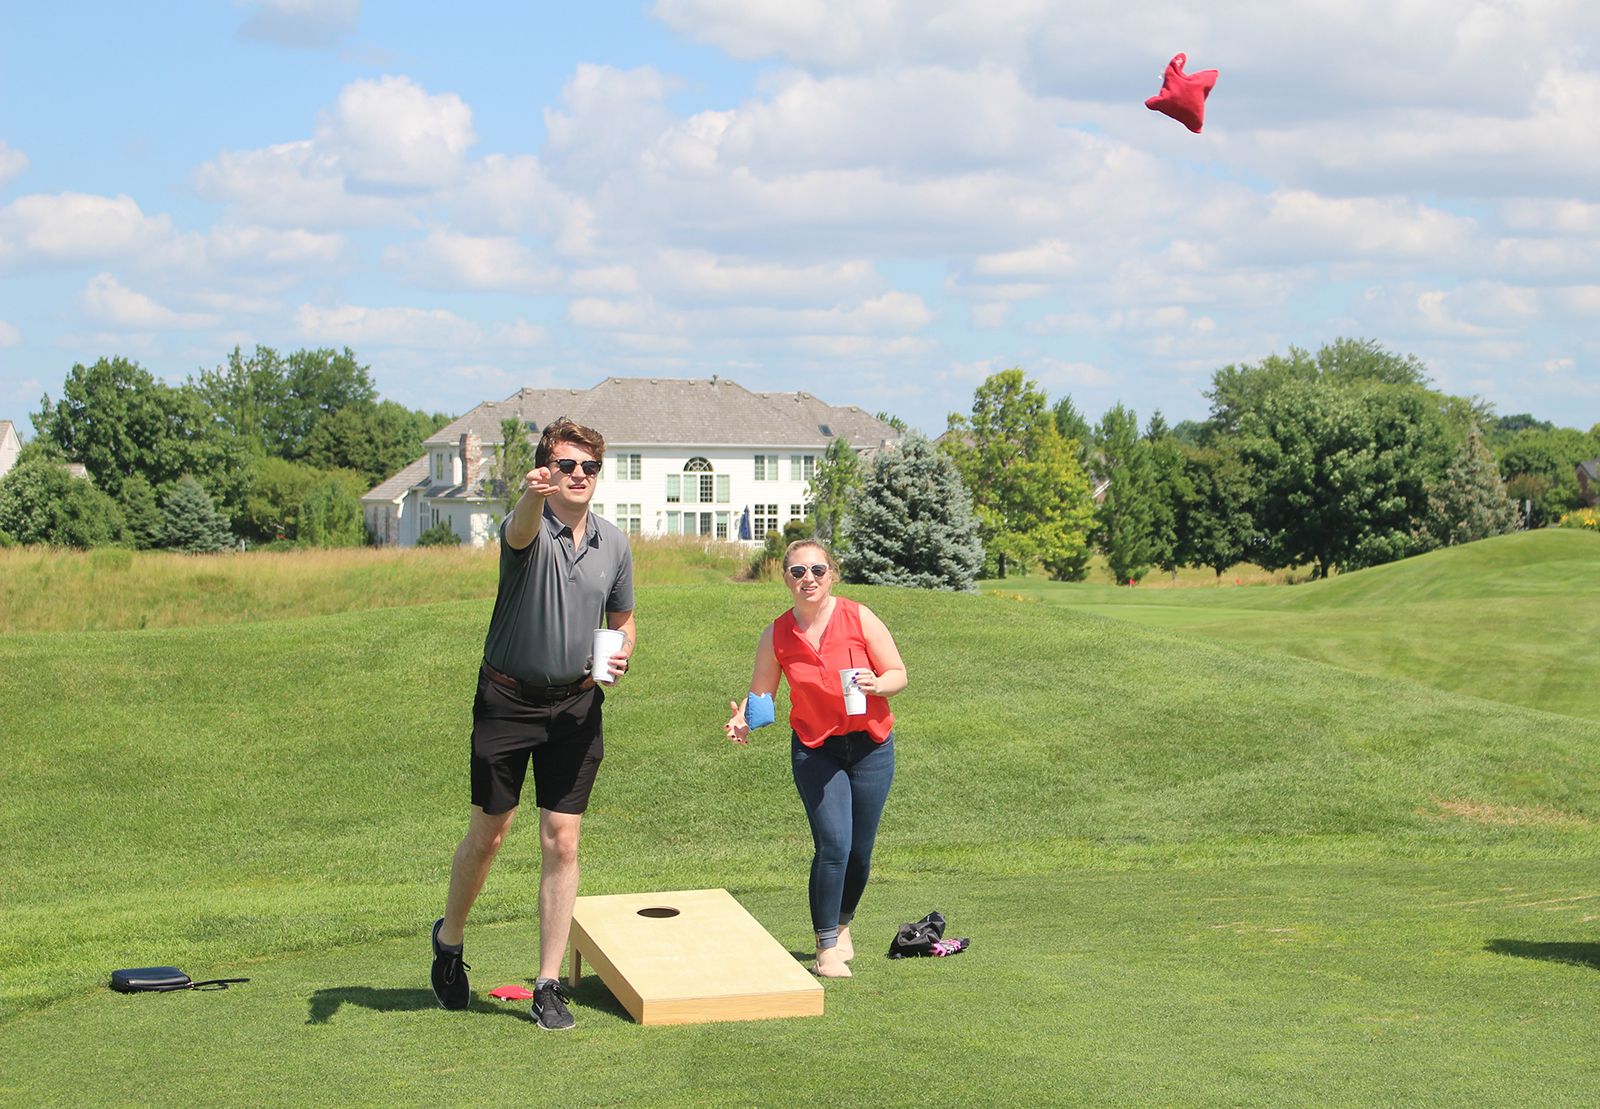 Stevie Chesterman, right, looks on while Cole Burmeister tosses a bean bag during a game of cornhole Monday at the Omaha Bar Association Field Day at Champions Run. They both work at the Sarpy County Public Defender's Office. (Photo by Scott Stewart)